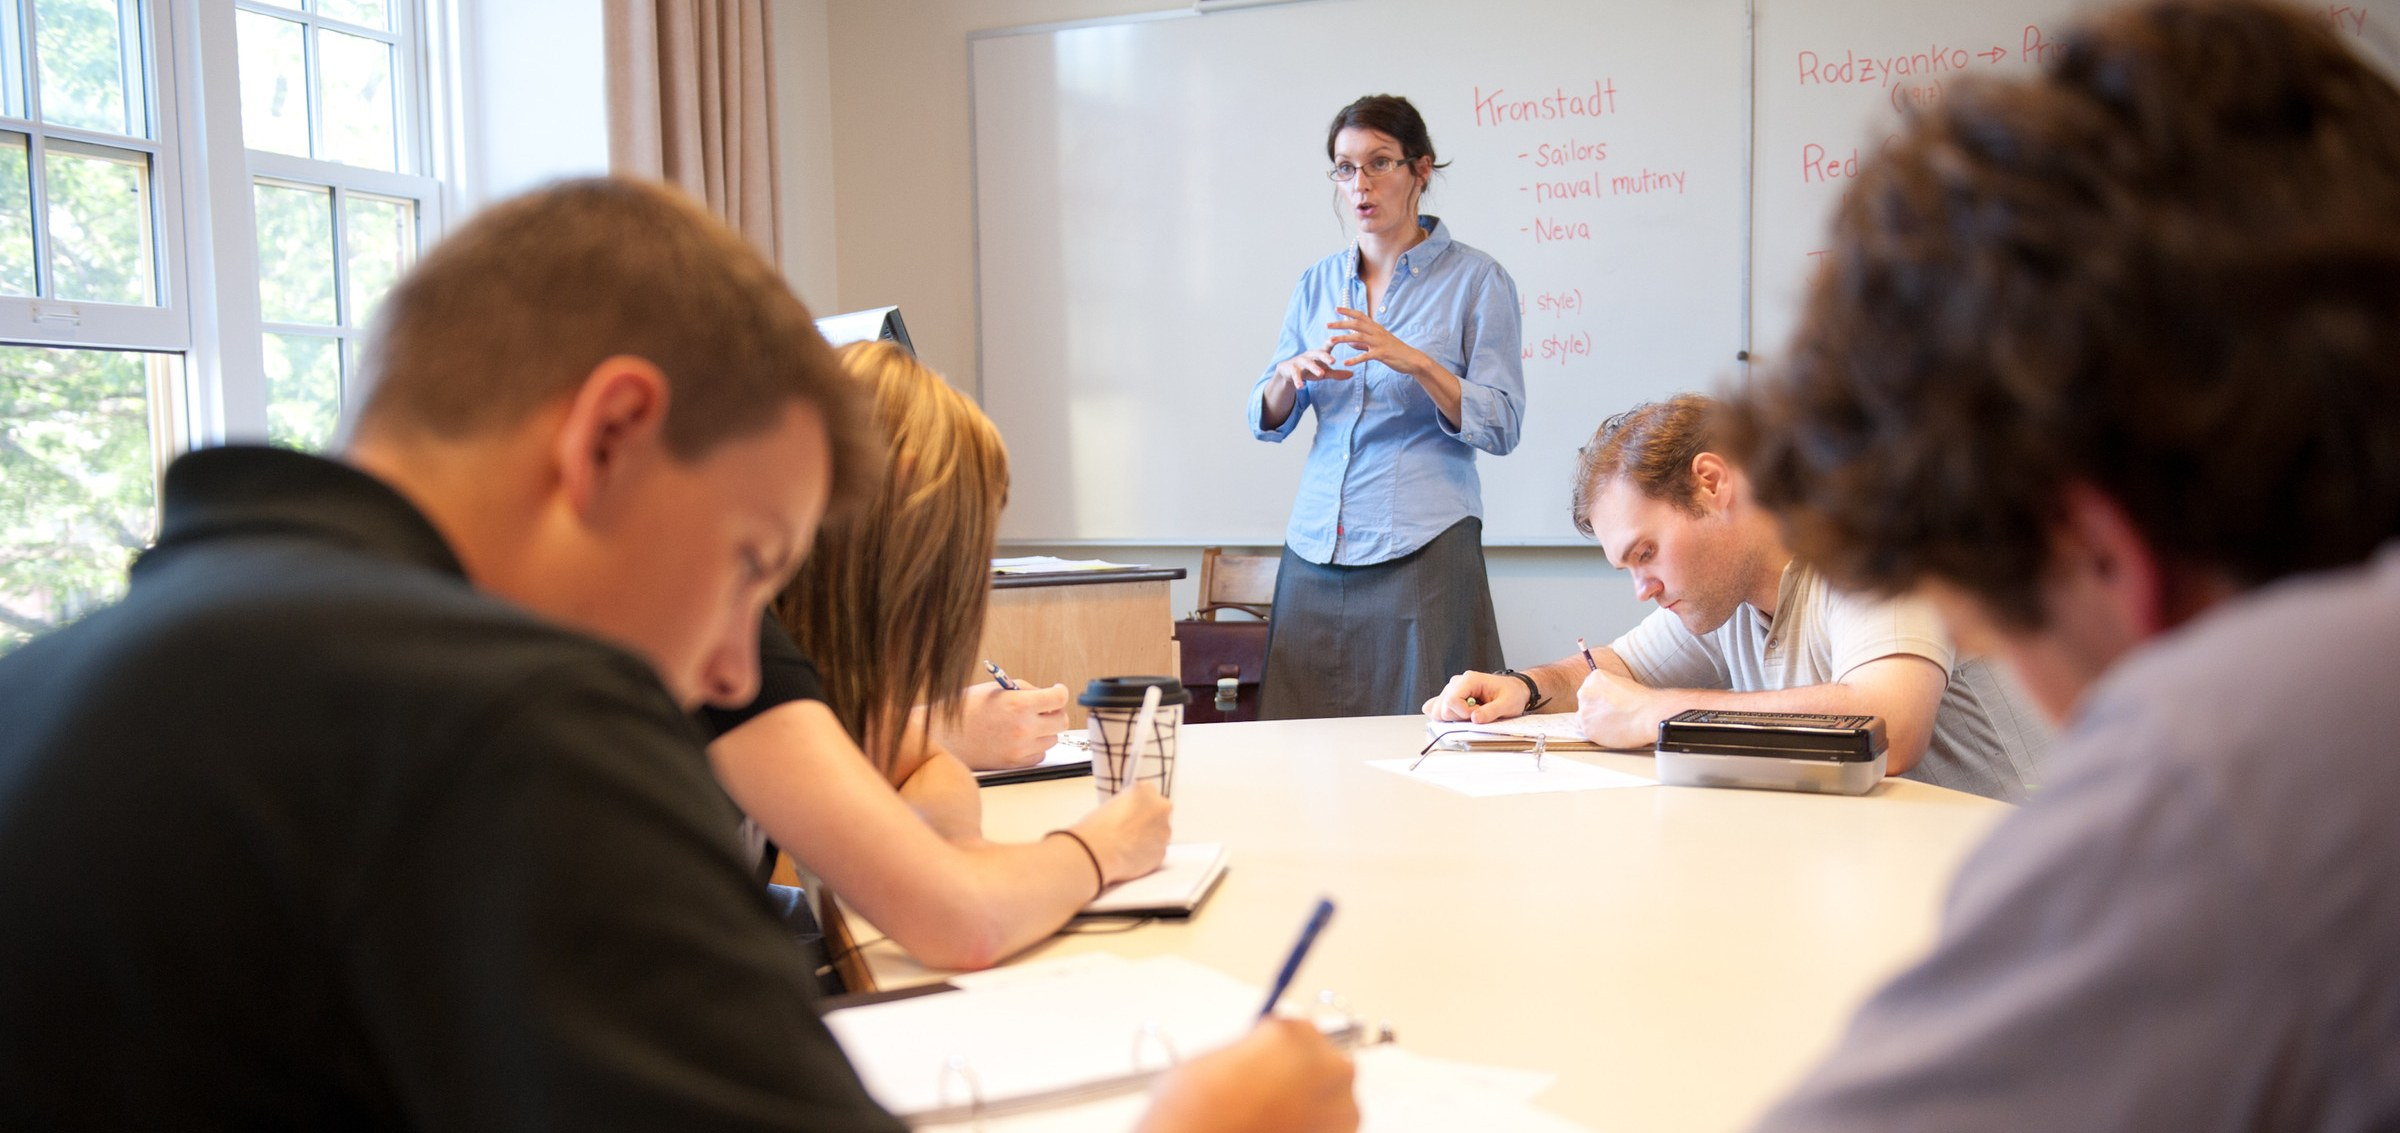 A professor speaks at the front of a classroom